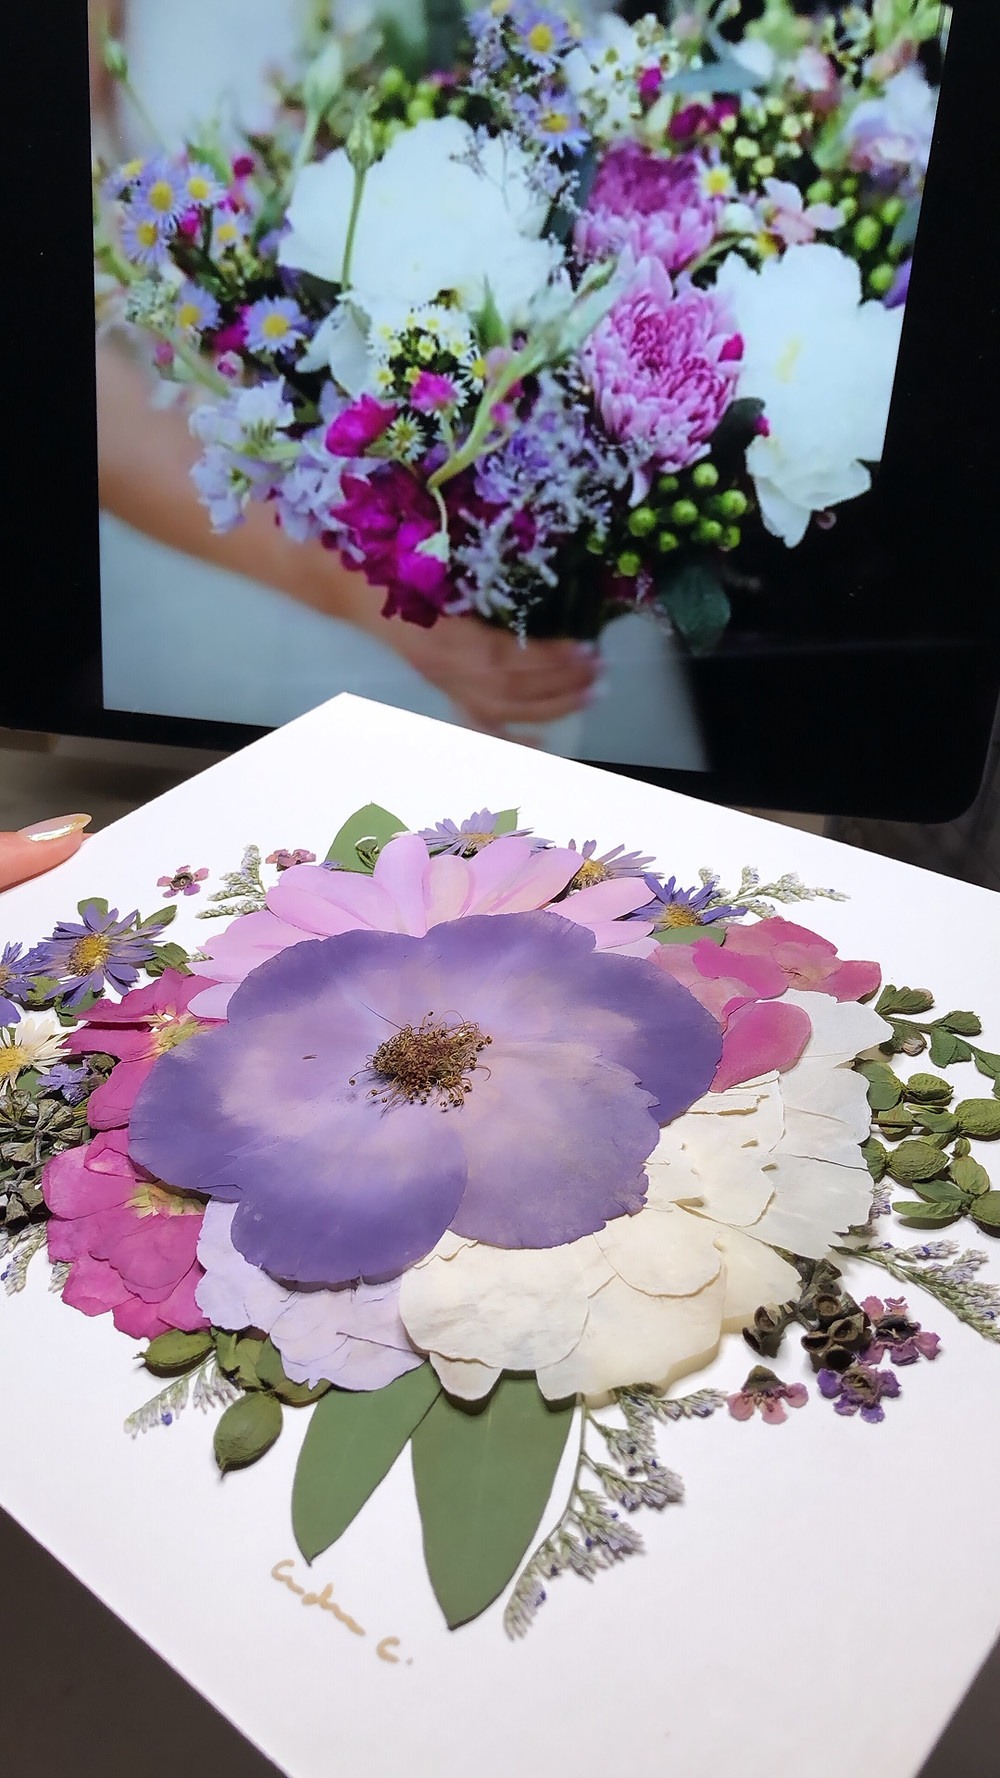 Color-enhanced pressed flower piece next to the original bridal bouquet.